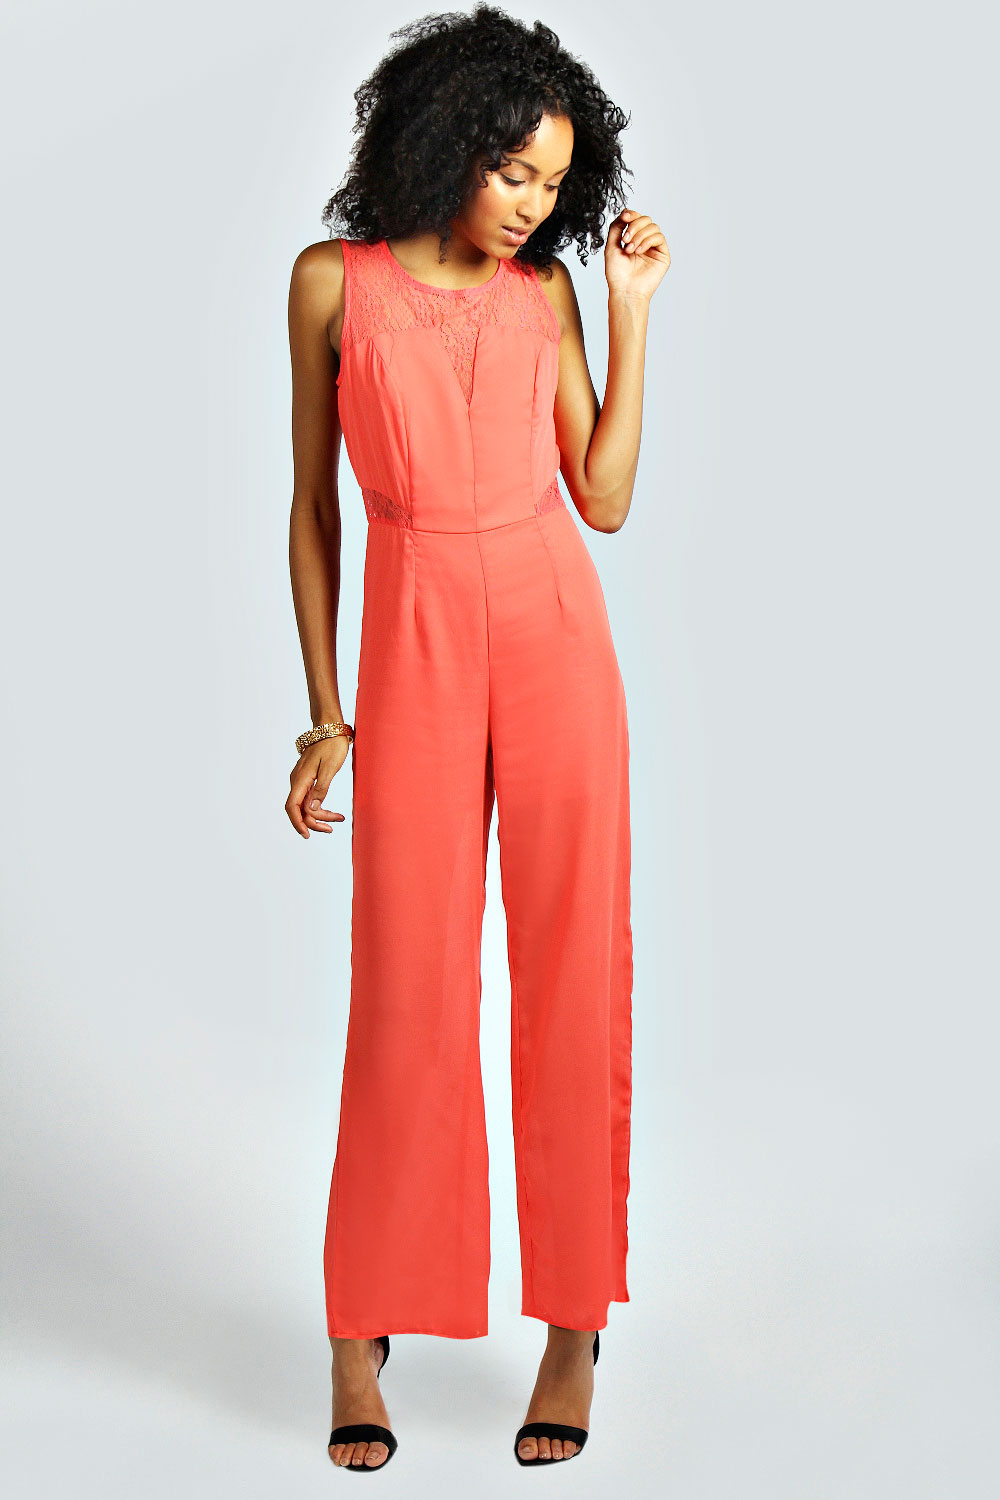 Boohoo Womens Hazel Lace Detail Wide Leg Jumpsuit Playsuit All In ...